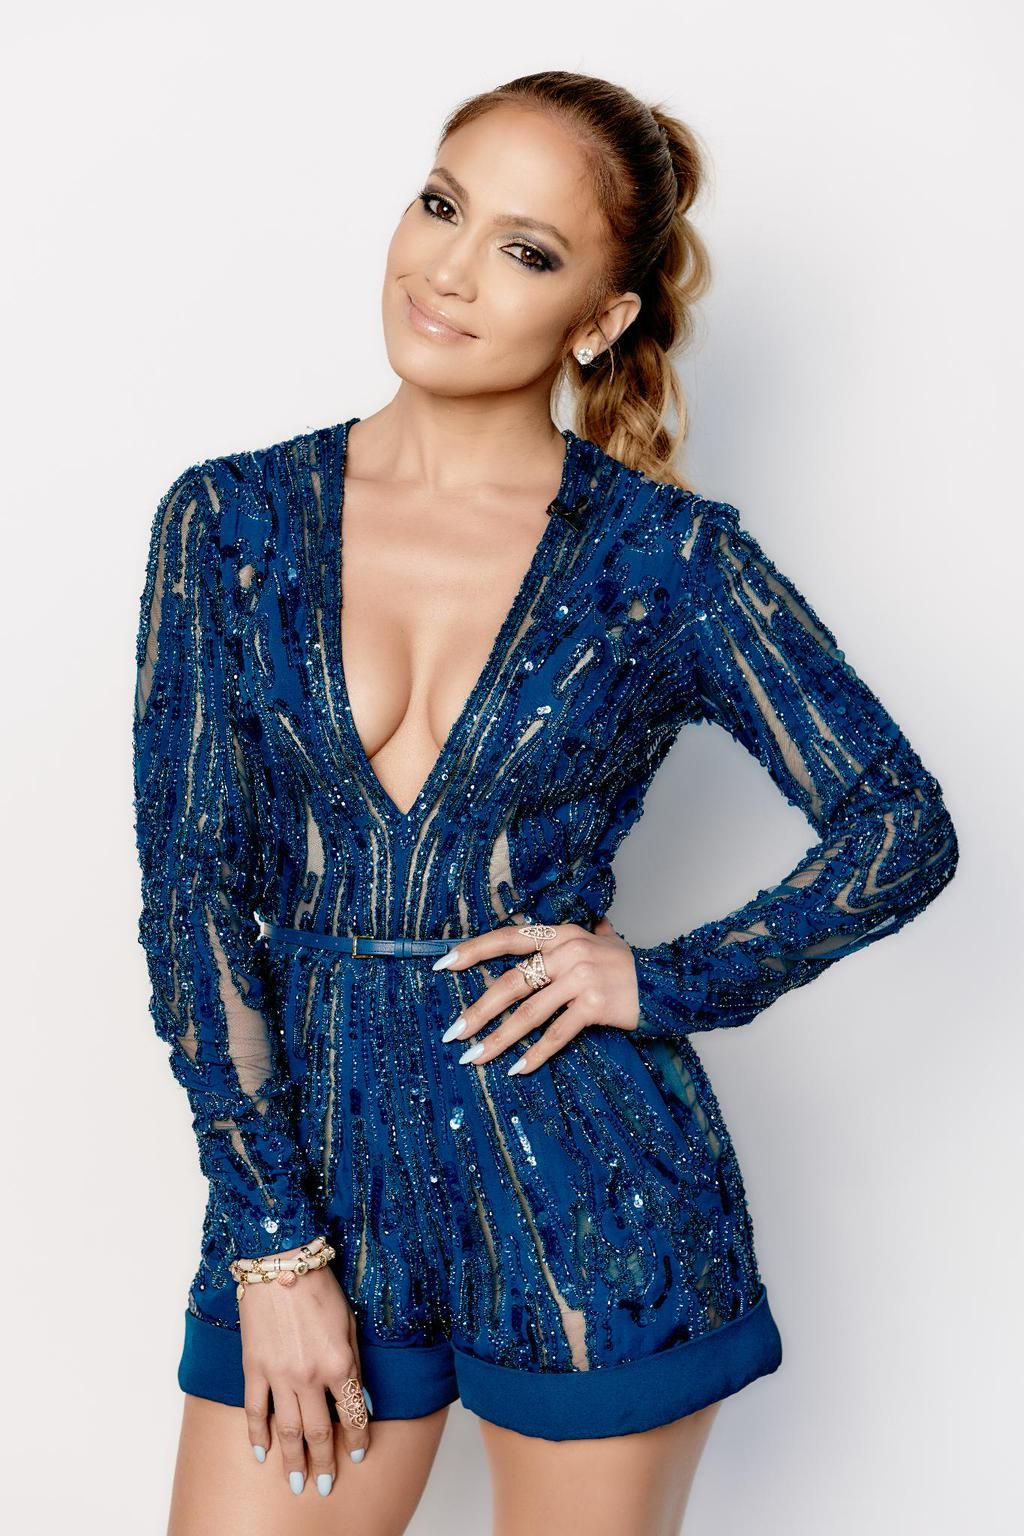 Tickets to see @JLo are ON SALE!  Be the first on the block to see Jenny from the Block! >> http://bit.ly/1PNGX2S